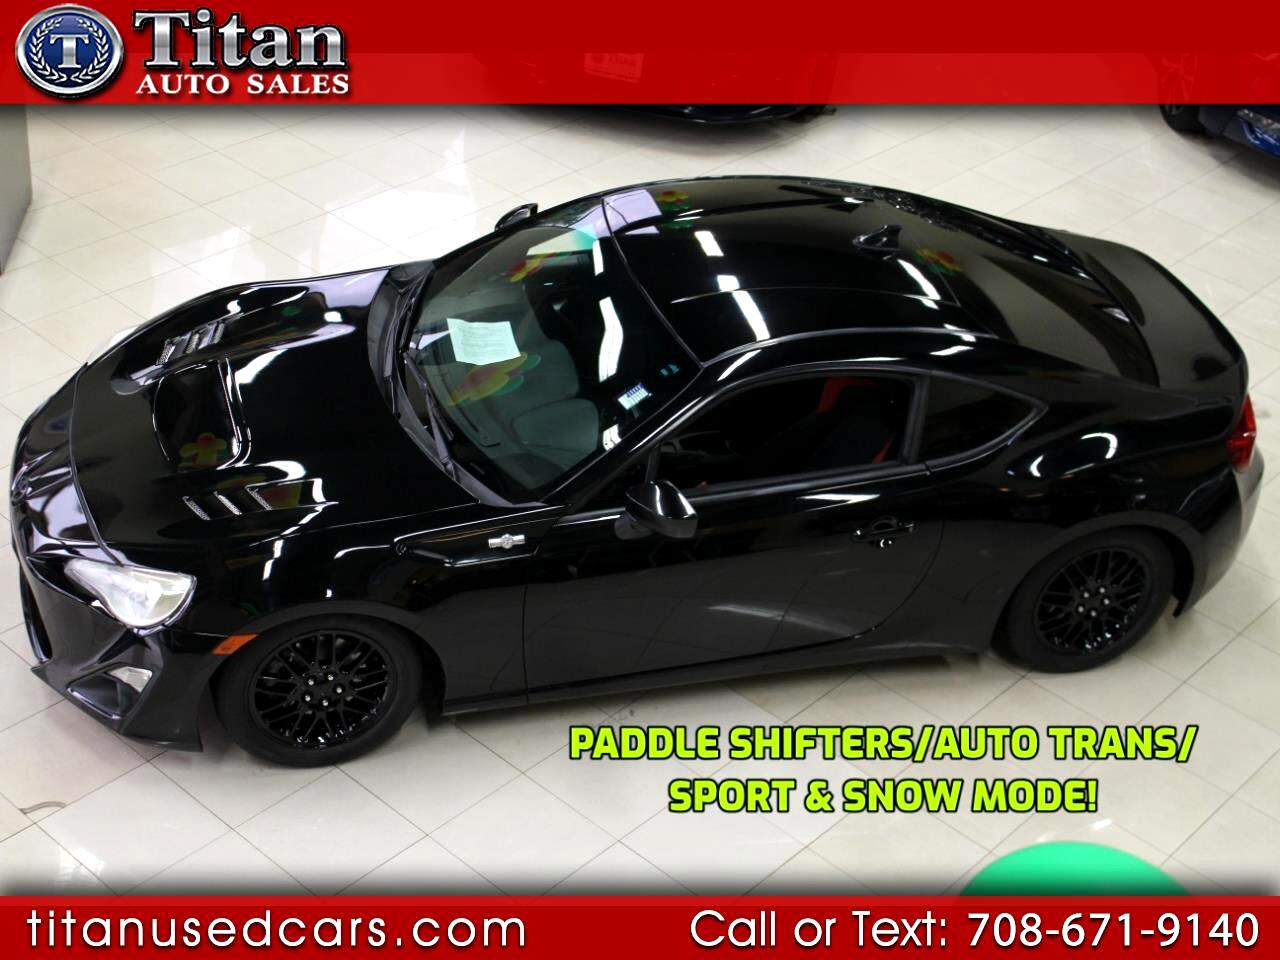 2013 Scion FR-S 2dr Cpe Auto (Natl)